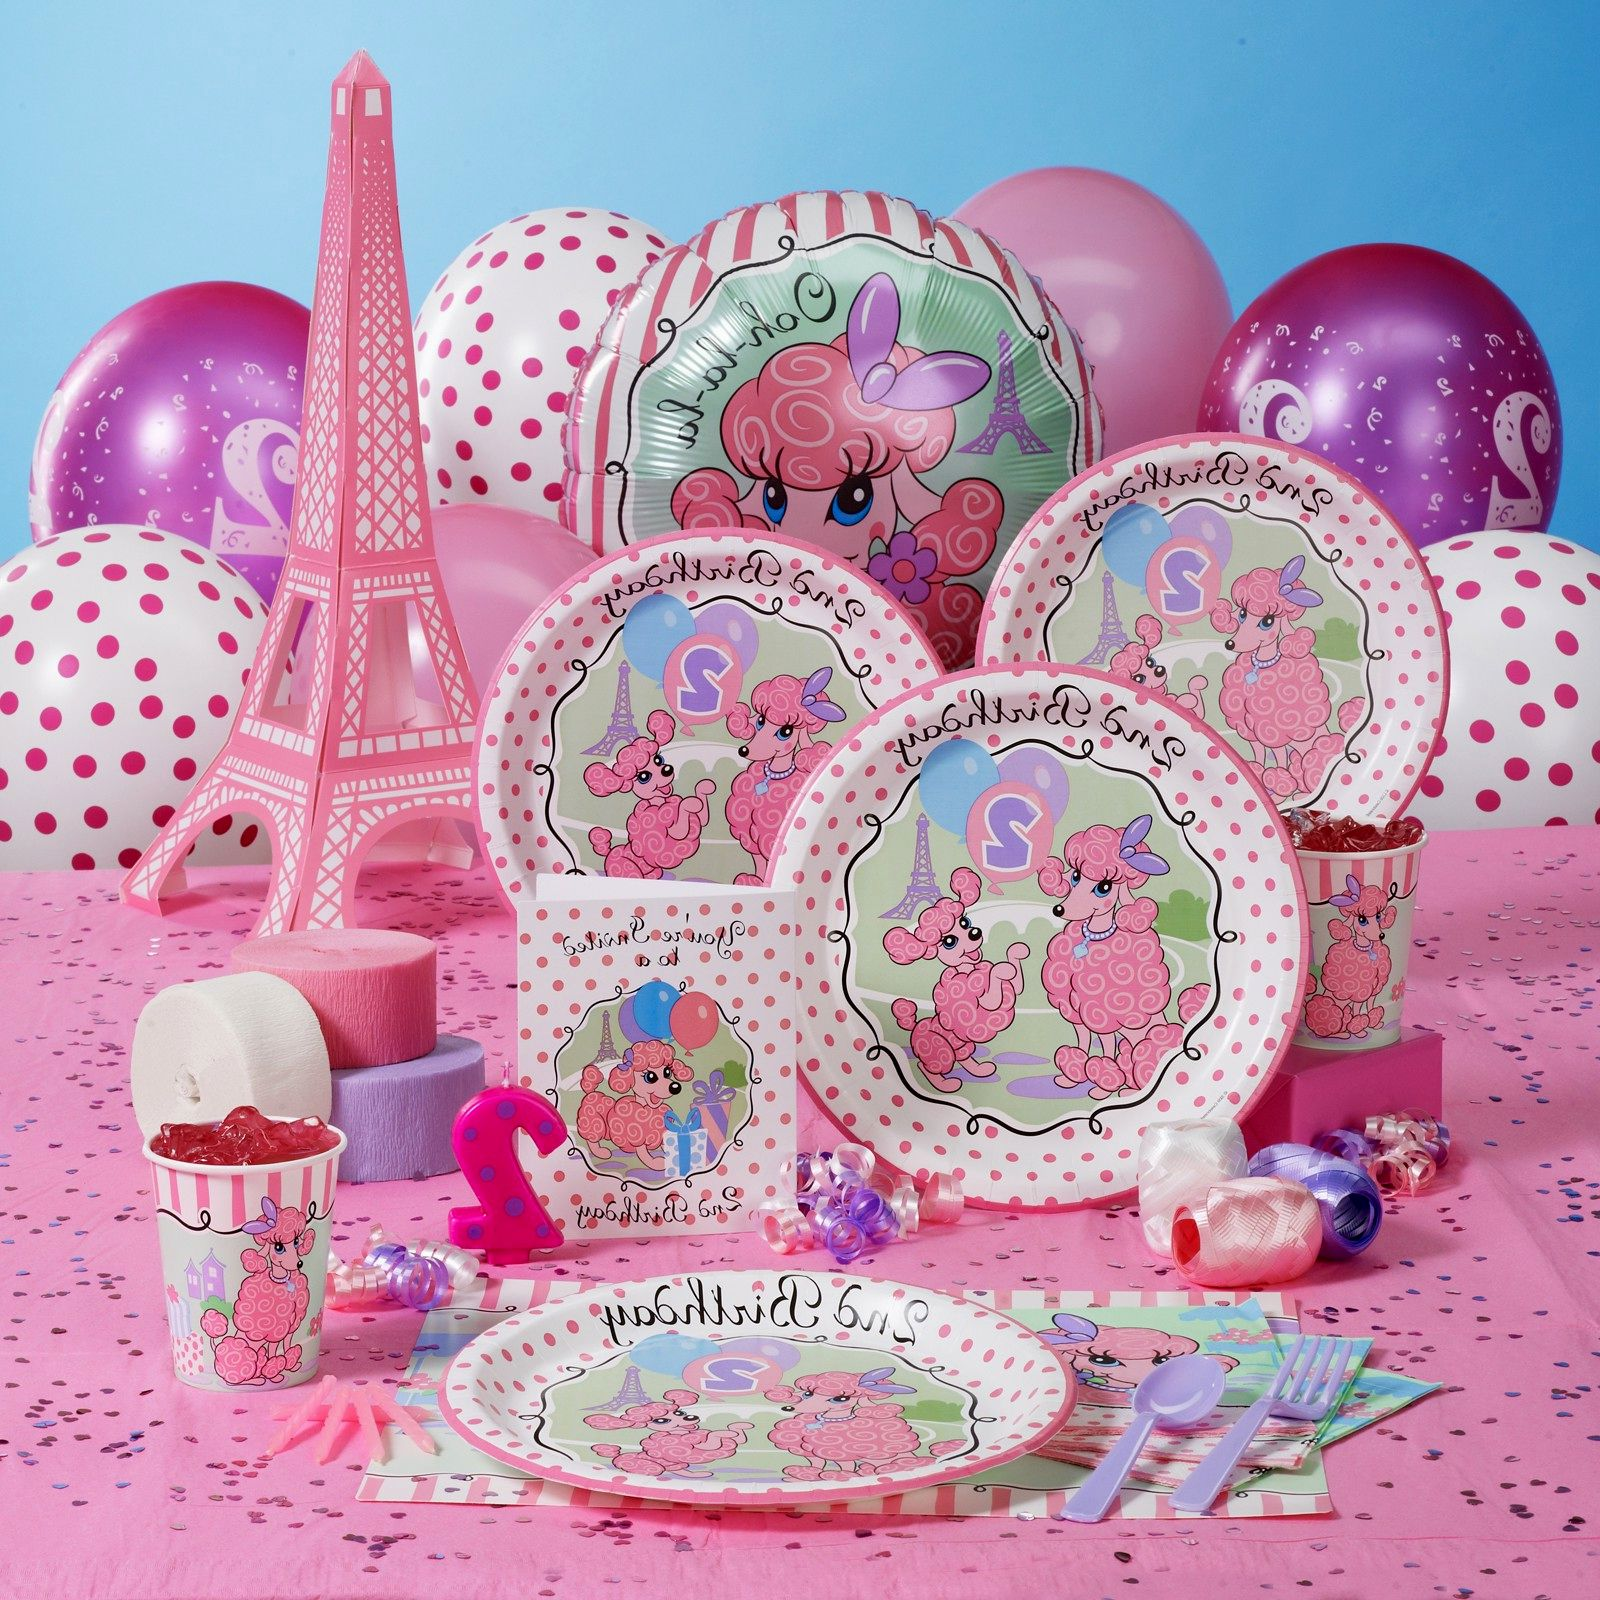 birthday party themes for girls ; second-birthday-party-themes-for-girl-second-birthday-party-themes-for-girl